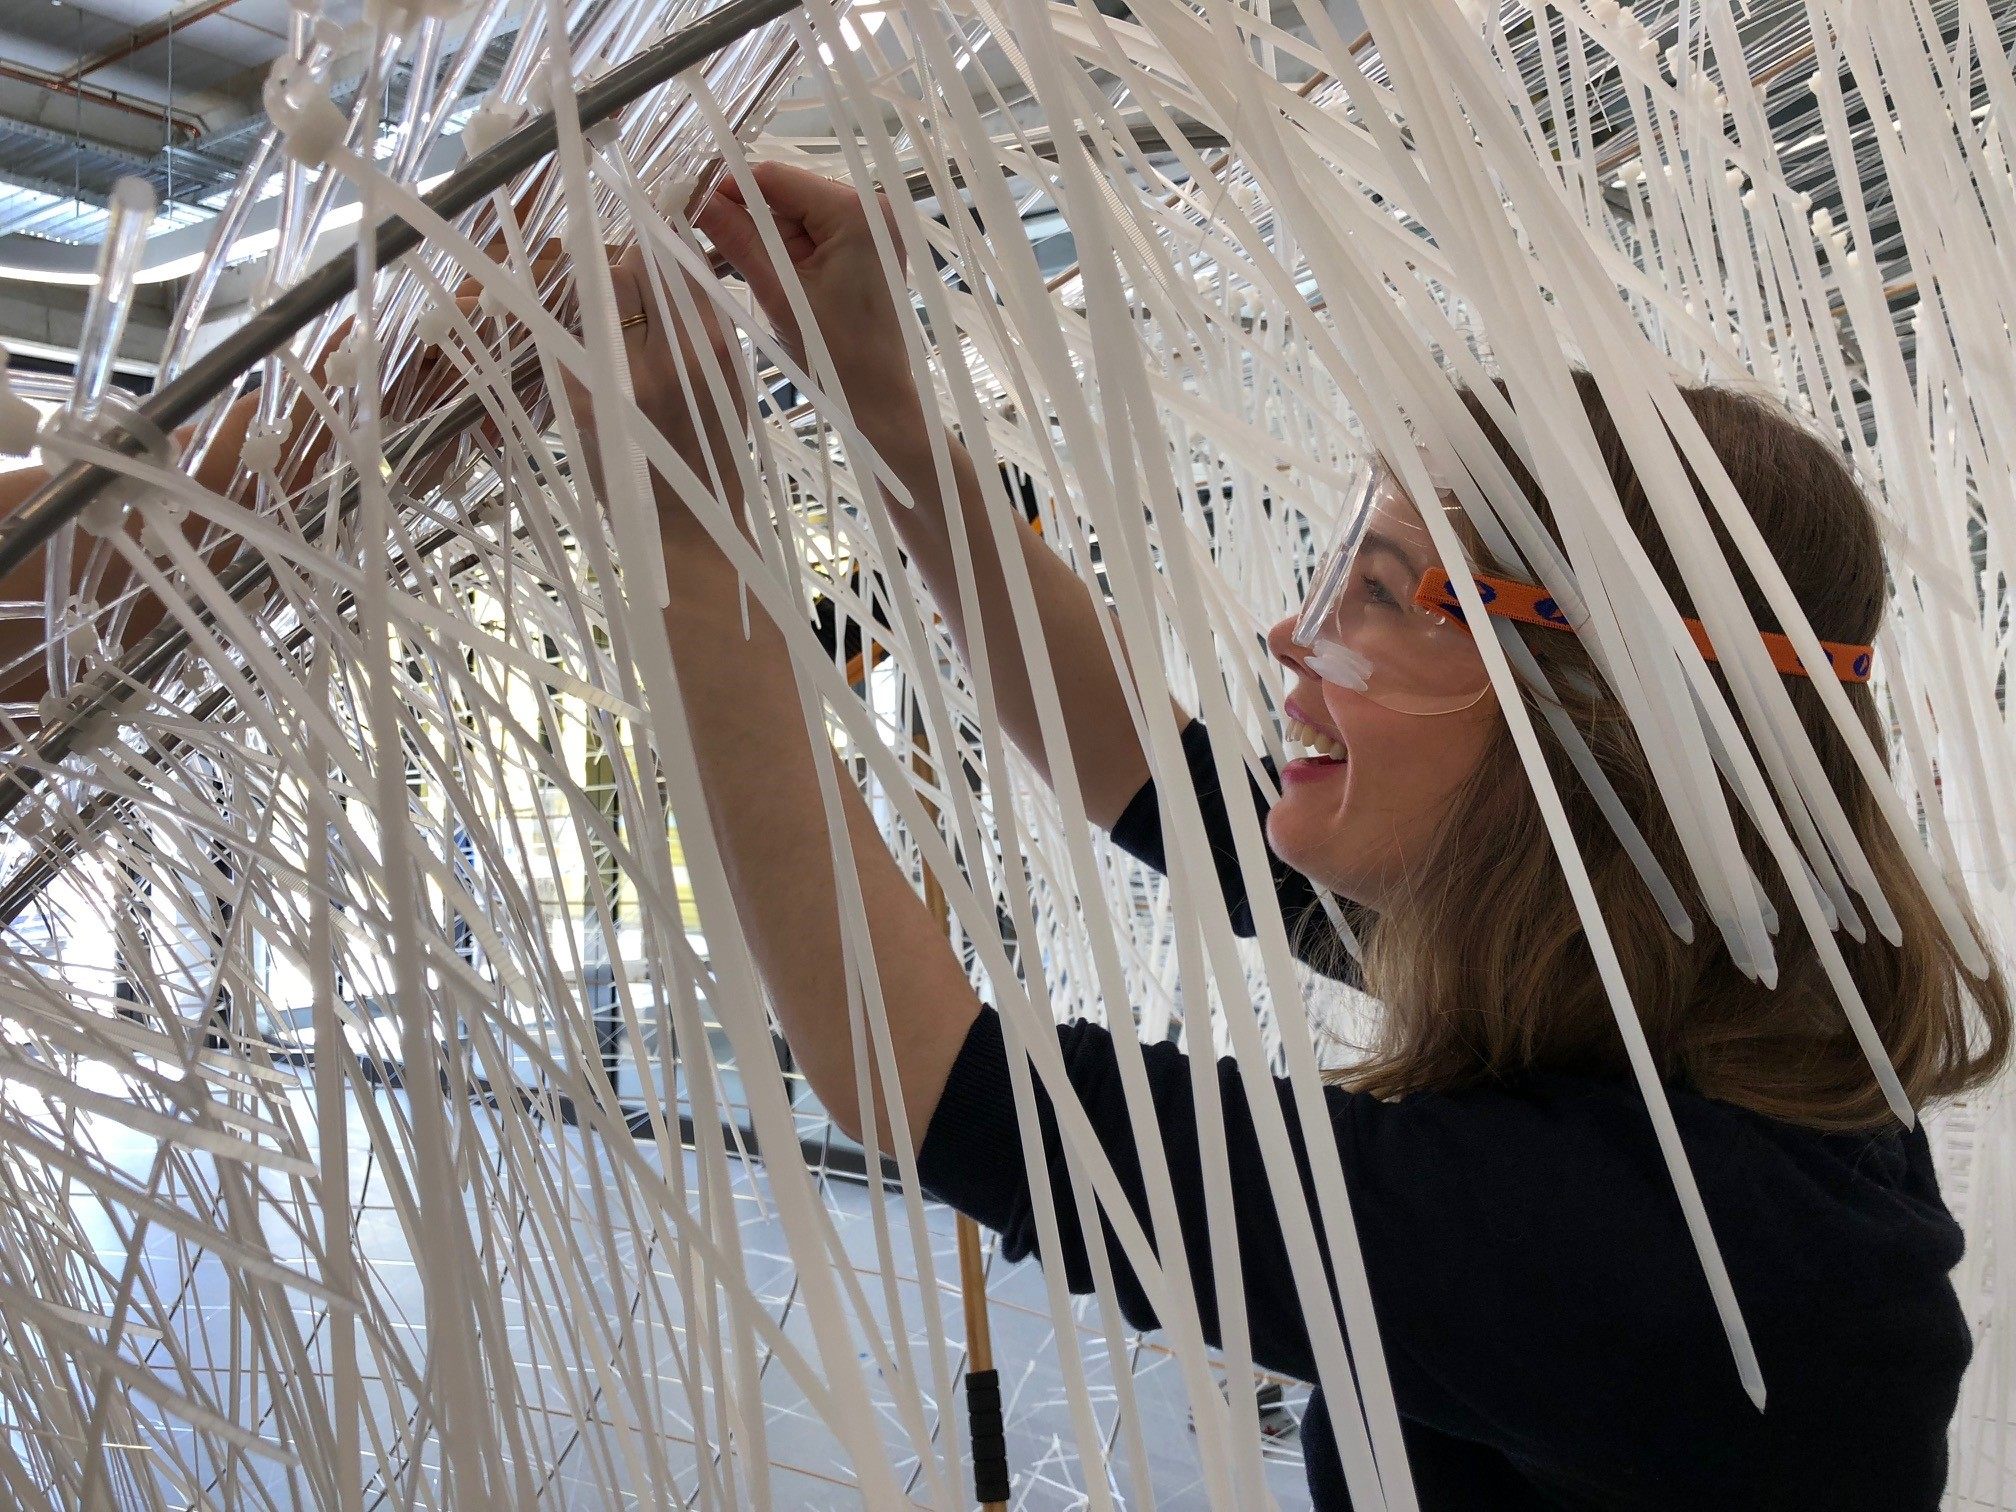 Professor Kuma's concept of 'reckless weaving' was used to create Namako's sense of fluid movement. Photo: supplied